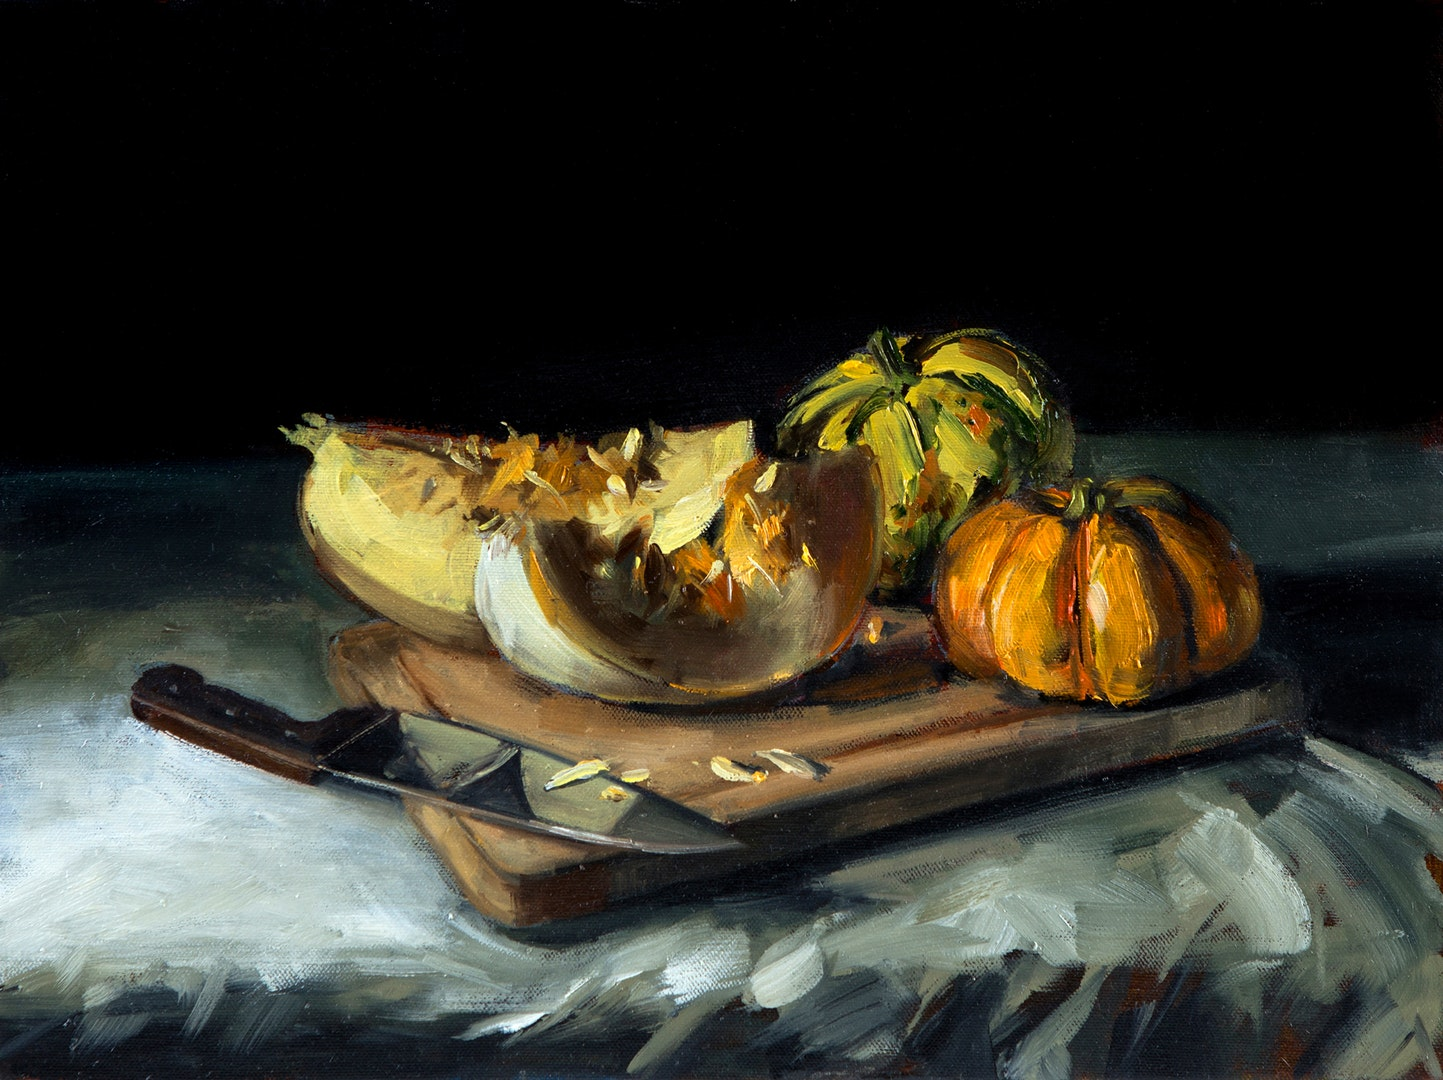 Tushar Sabale  Ghost Pumpkins and Gourds  Oil on canvas board, 50 x 80 x 5 cm  http://www.tusharsabale.com